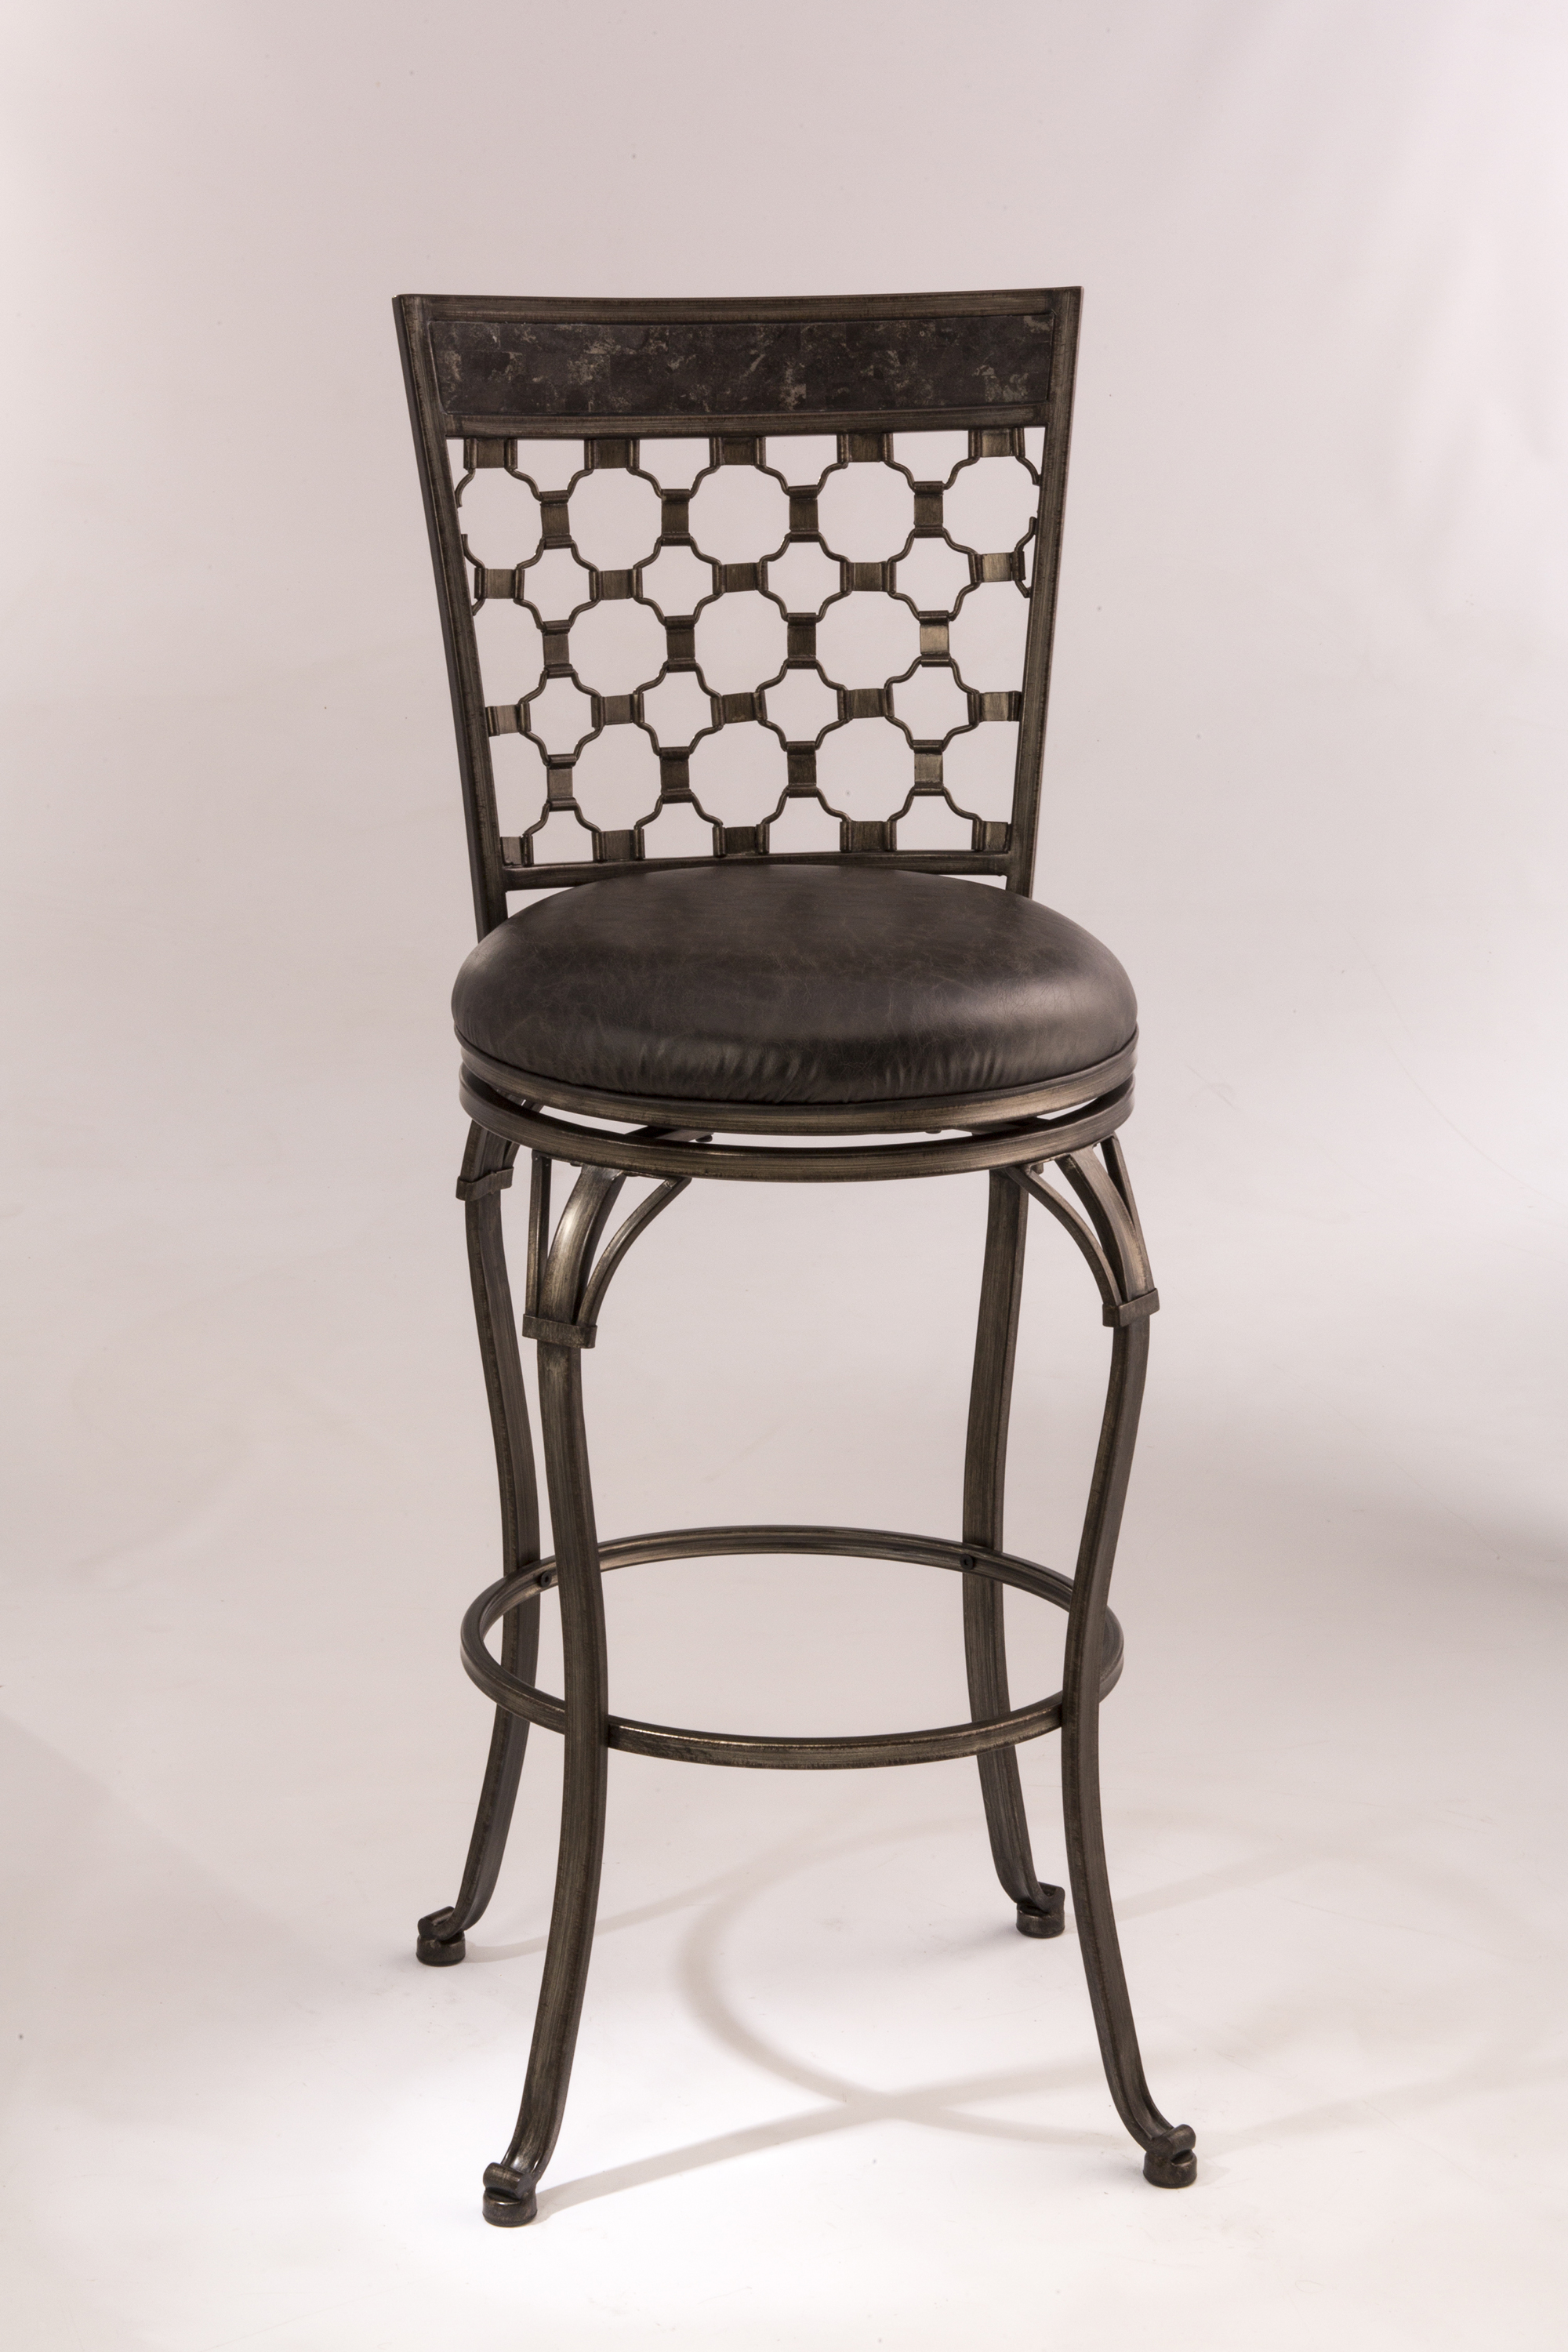 Hillsdale Metal Stools Swivel Counter Stool - Item Number: 5752-827